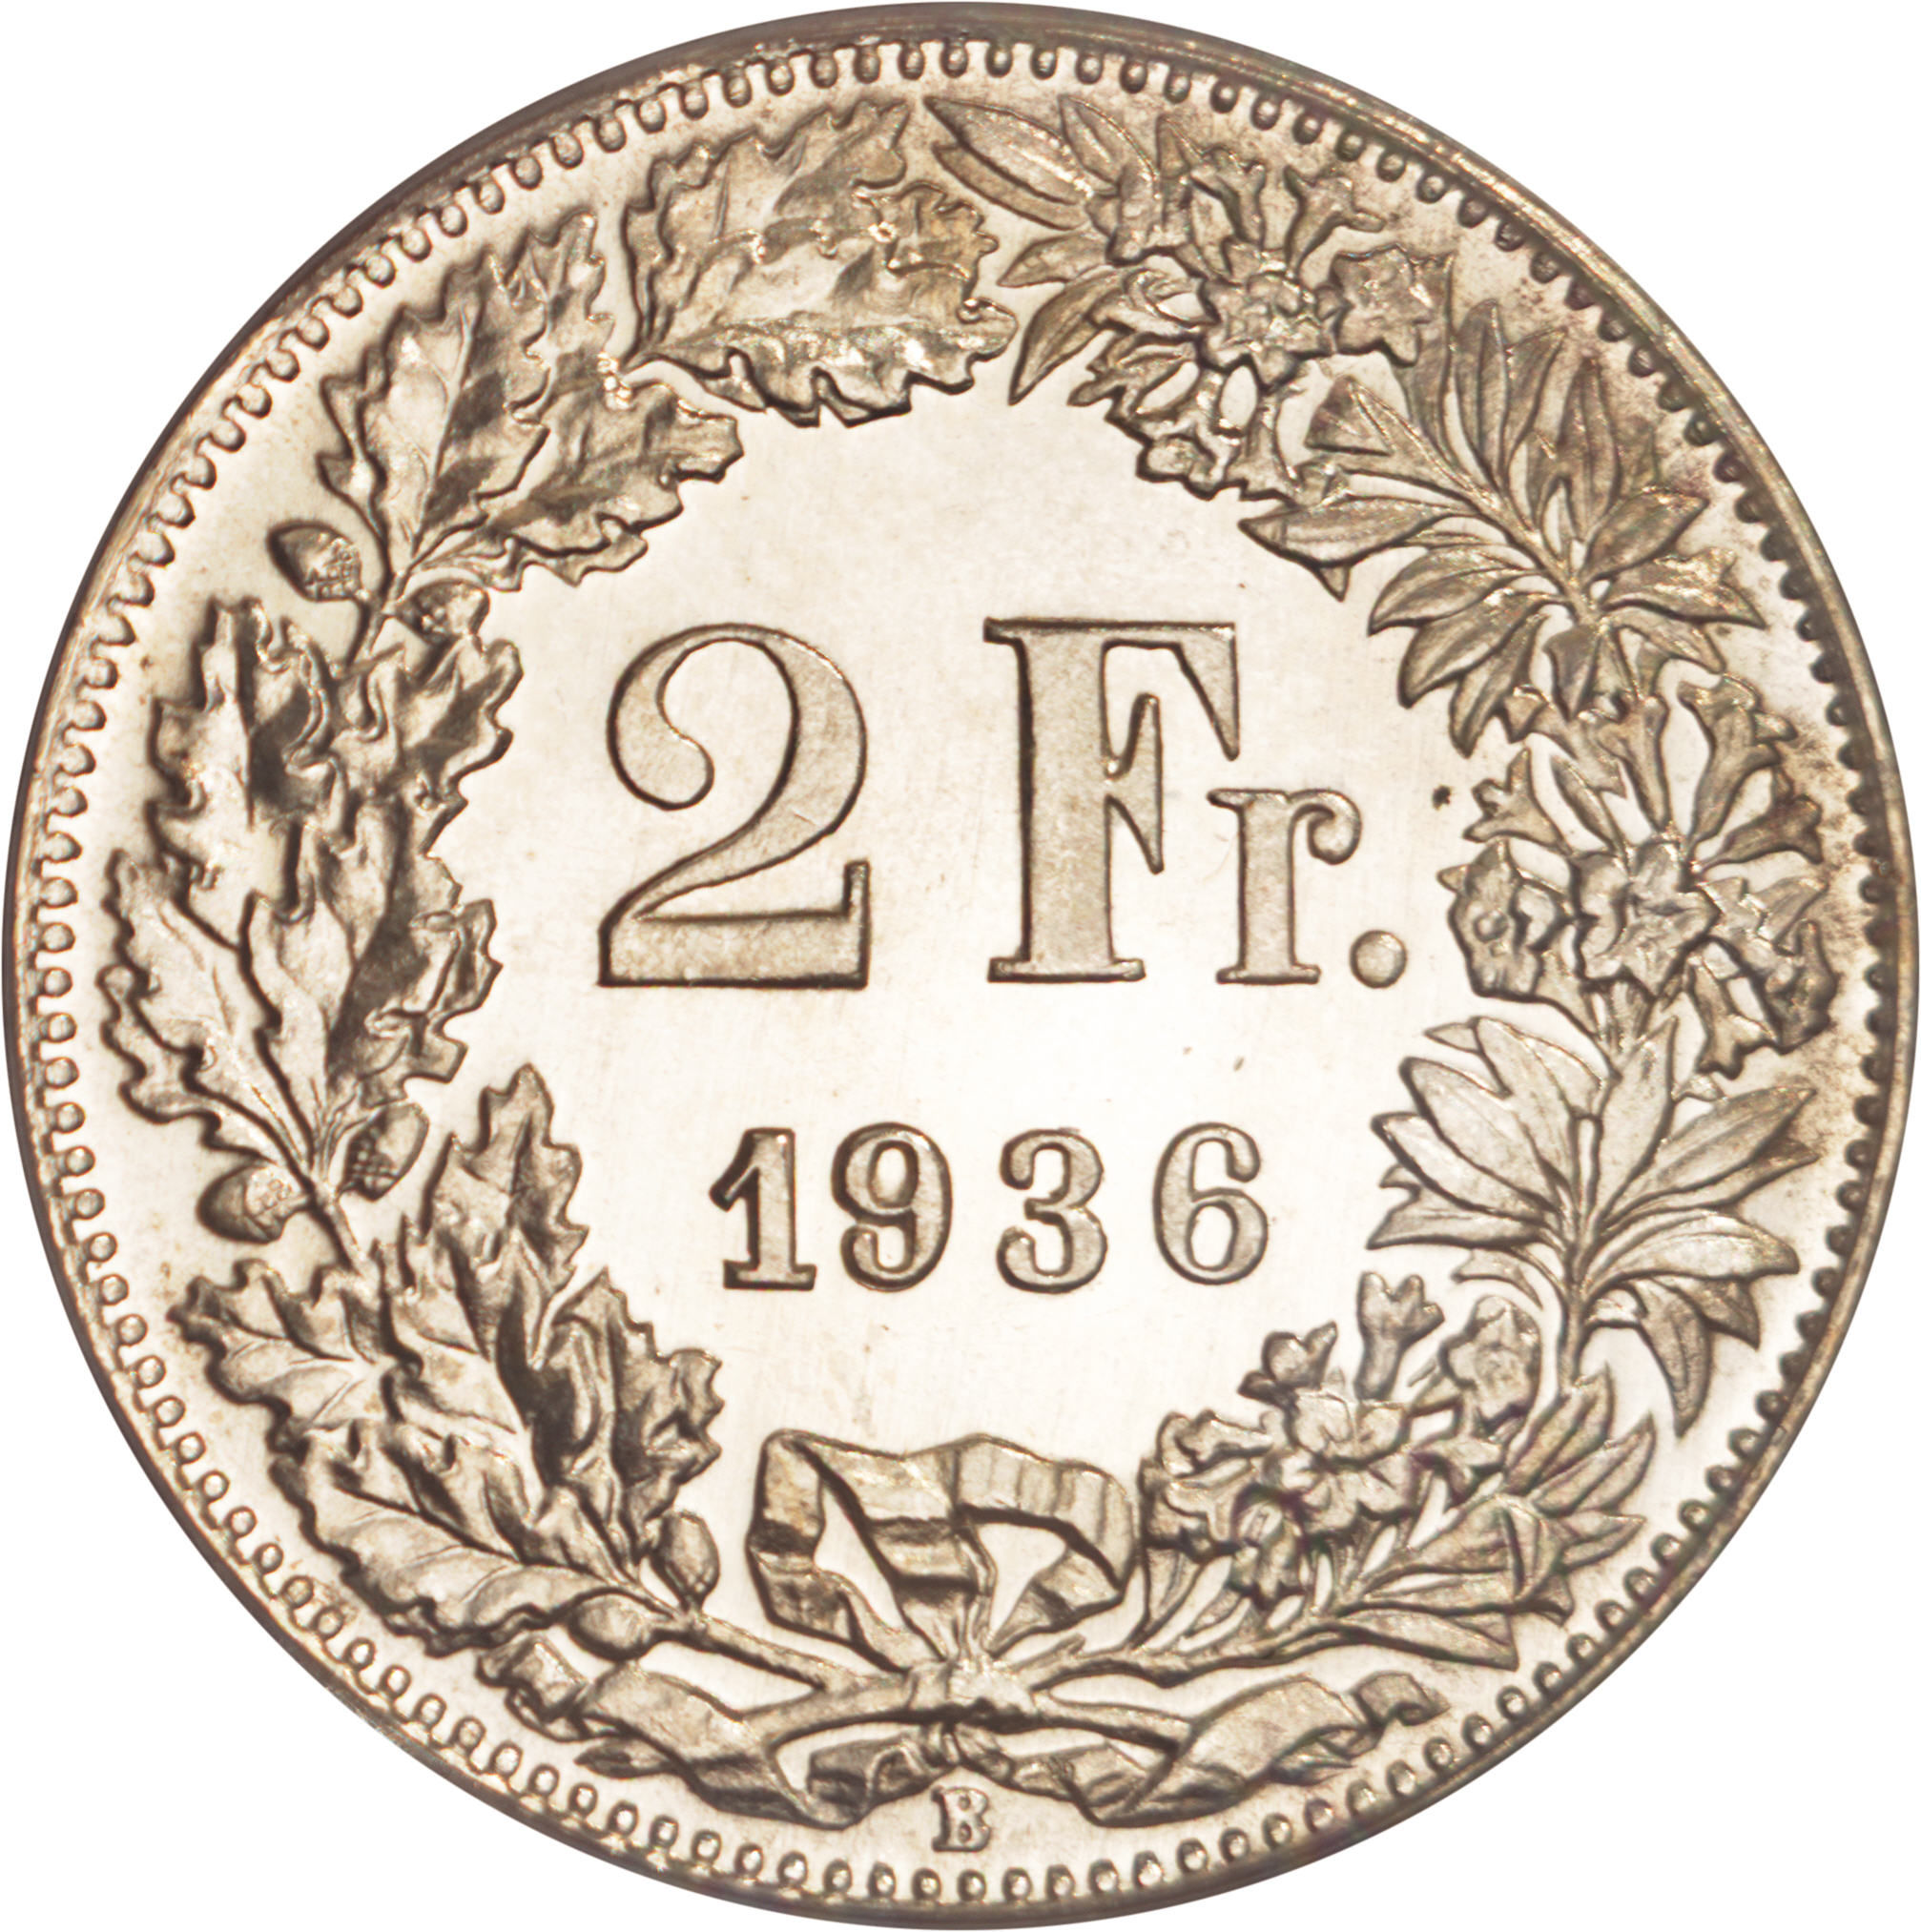 1959 B Switzerland 2 Francs Average Circulated Helvetia Silver Coin